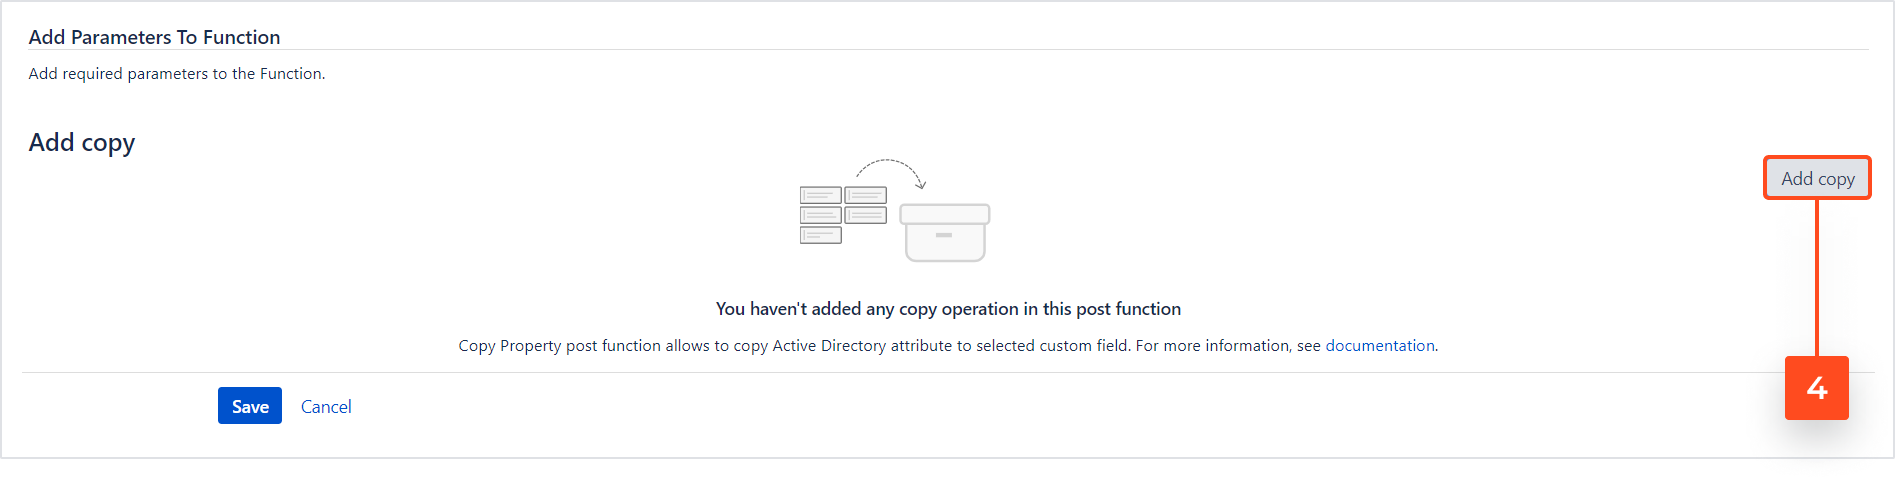 Active Directory Attributes Sync for Jira - Copy Property: Add Post Function